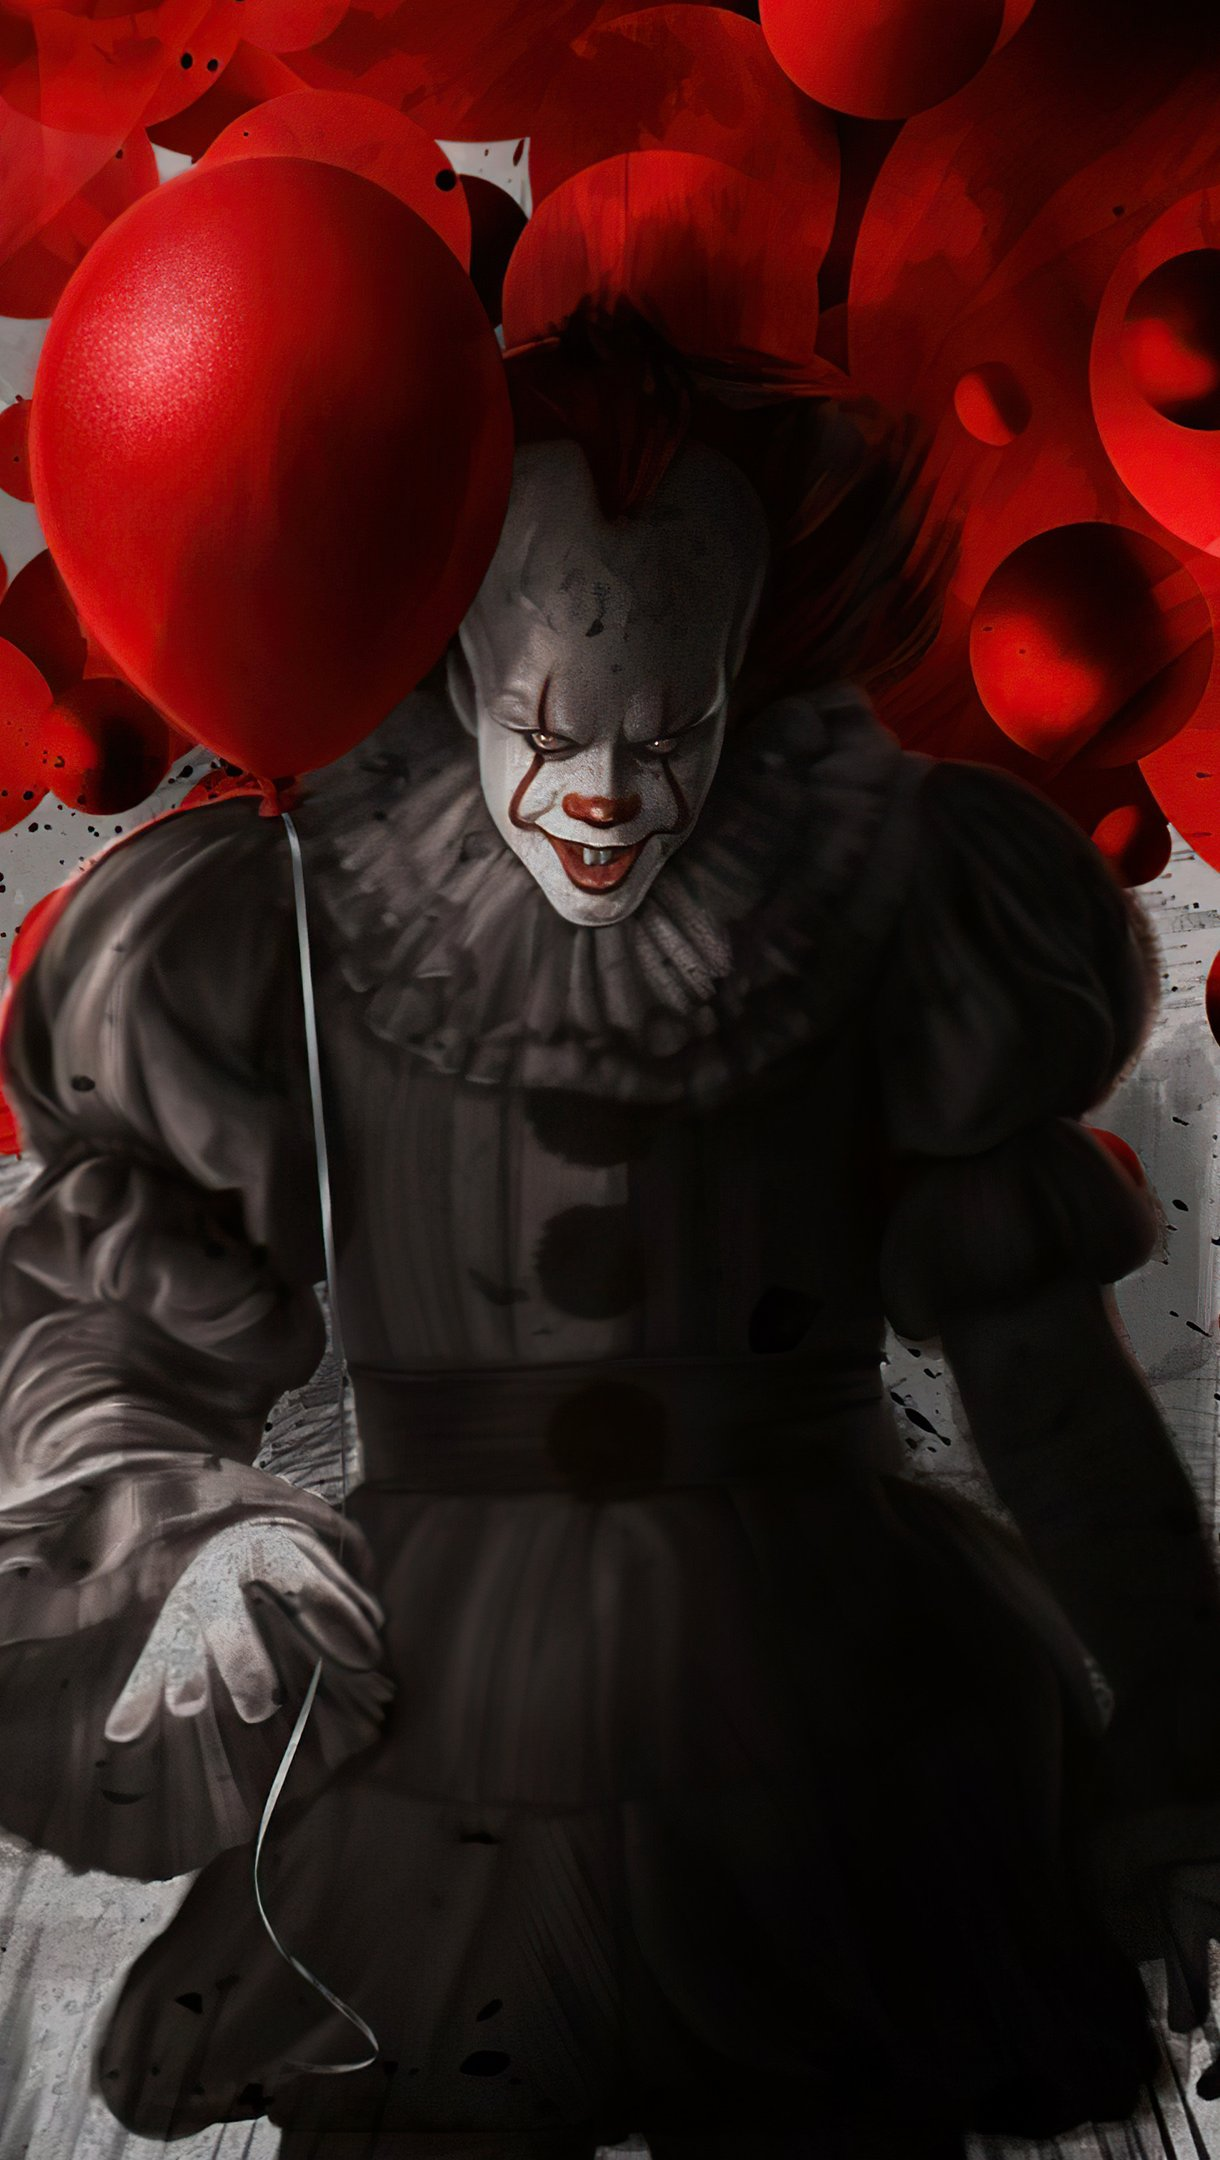 Wallpaper It Chapter two Vertical